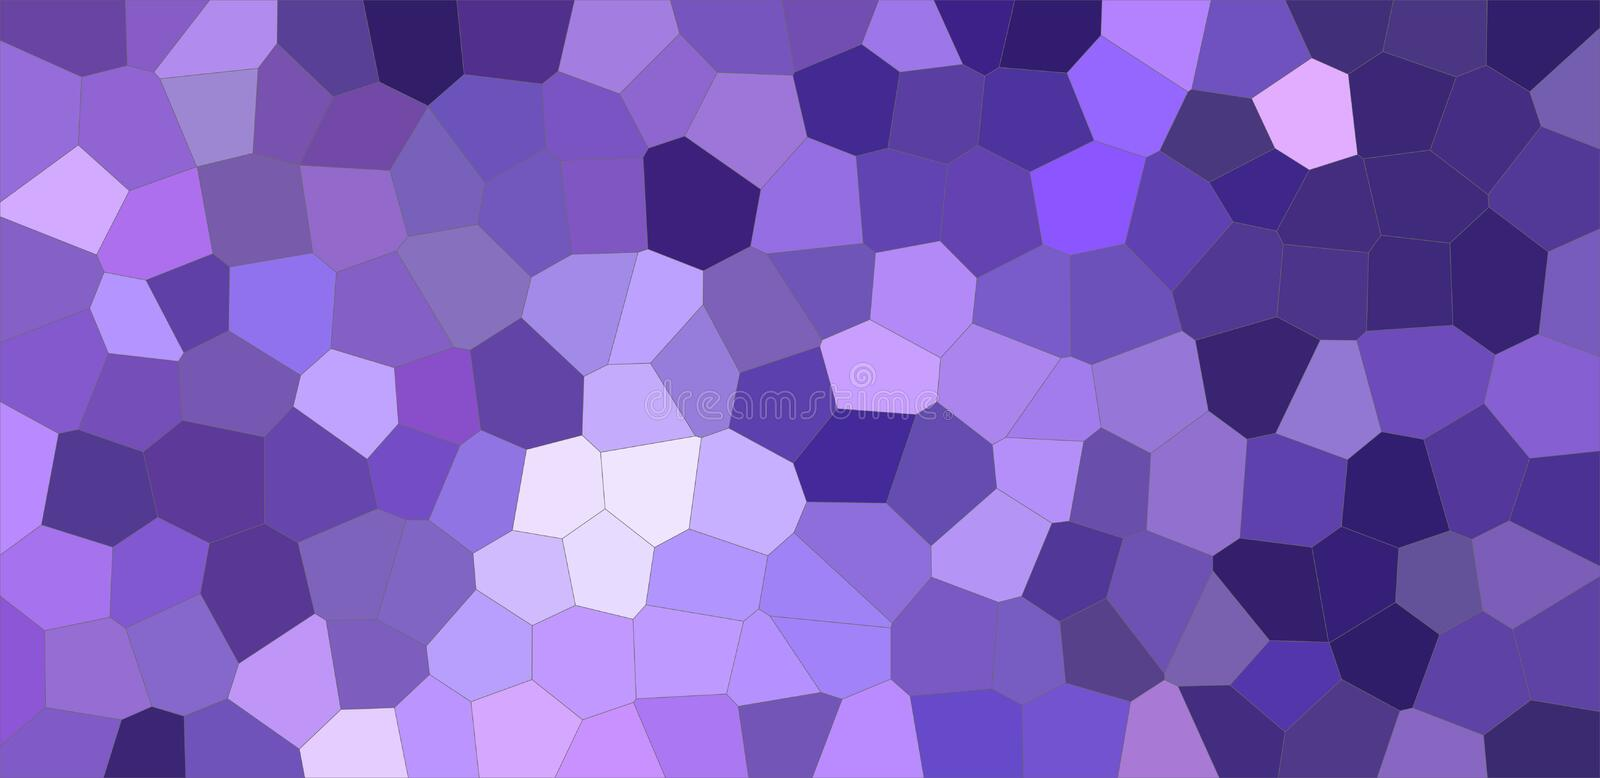 Dark blue and purple colorful Middle size hexagon background illustration. Dark blue and purple colorful Middle size hexagon background illustration stock illustration